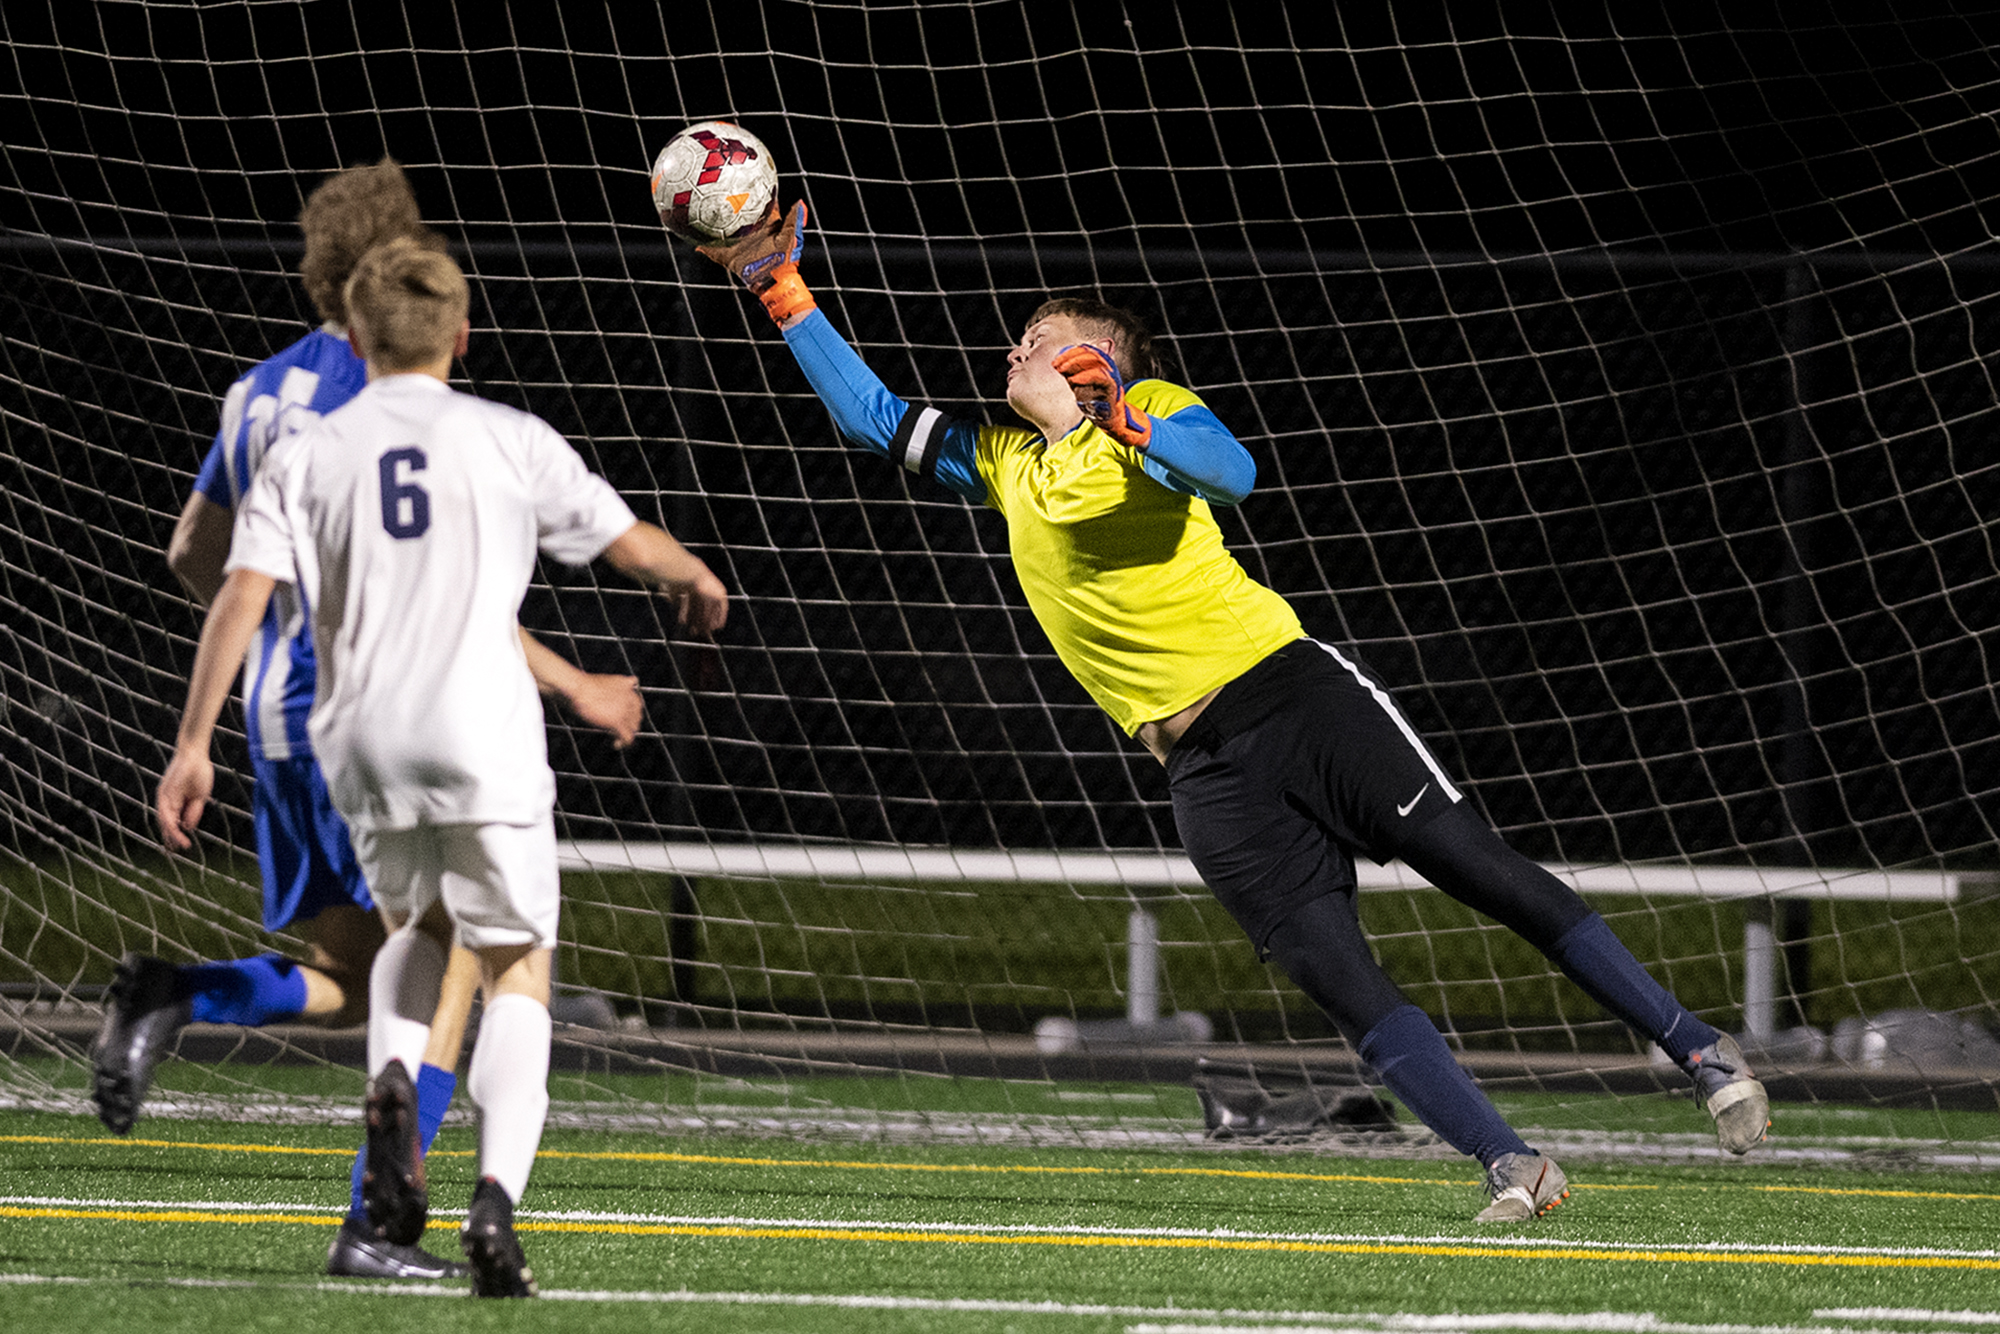 La Center goalkeeper Shawn Child makes a fingertip save late in a 1A Trico League game on Tuesday, April 13, 2021, at Seton Catholic Preparatory School. The Cougars won 3-1 in the 1A Trico League game.